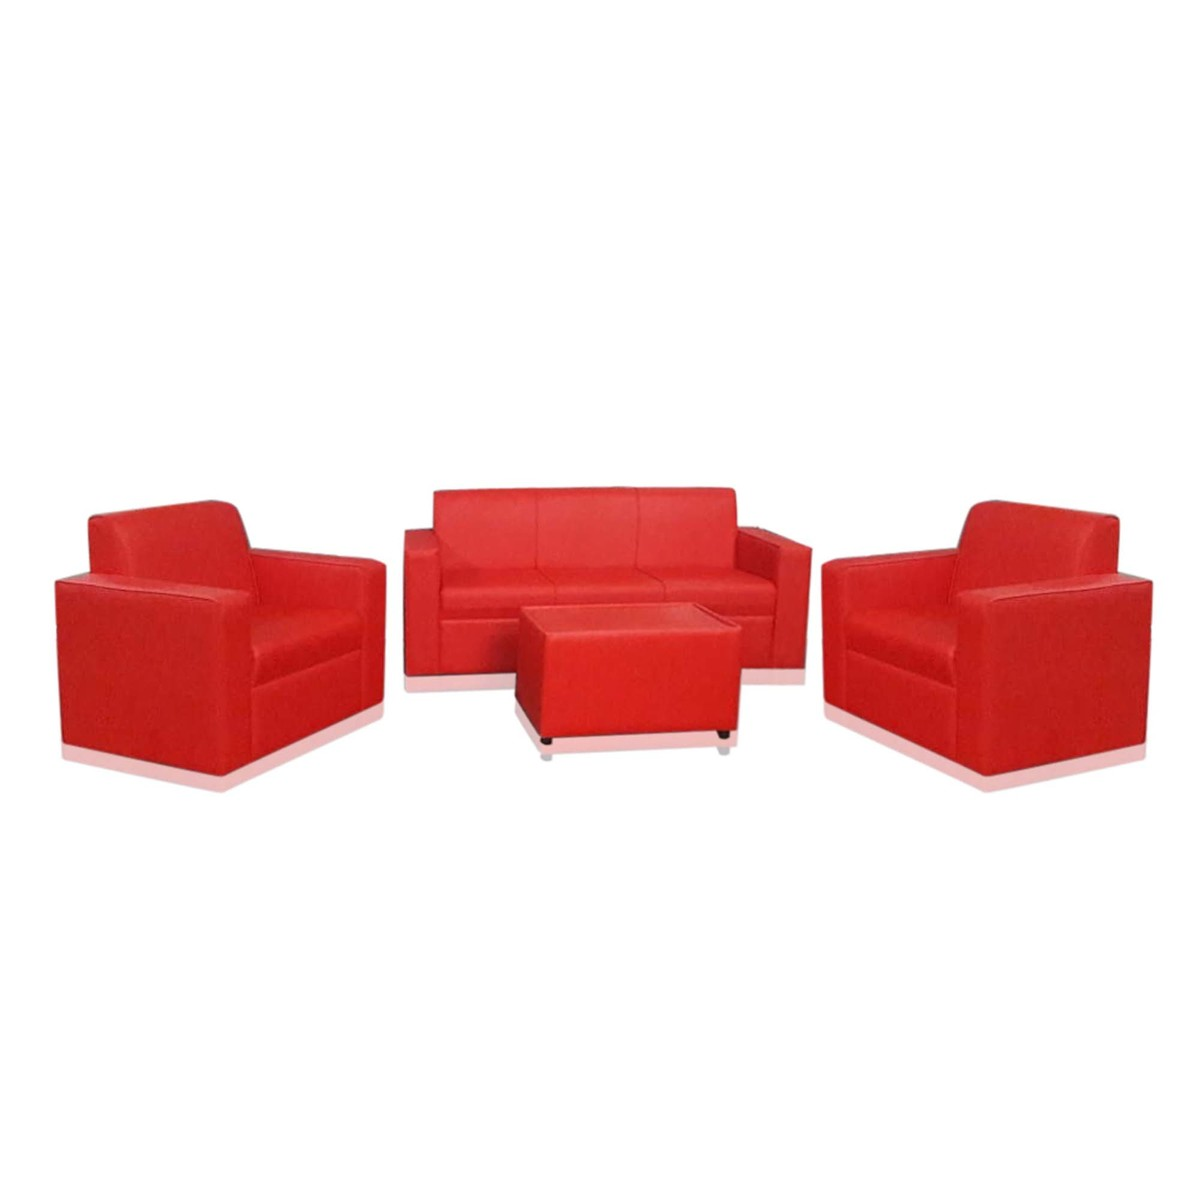 Excellent Buy Design Plus Sofa Set 5 Seater 3 1 1 Ml04 Red Online Unemploymentrelief Wooden Chair Designs For Living Room Unemploymentrelieforg